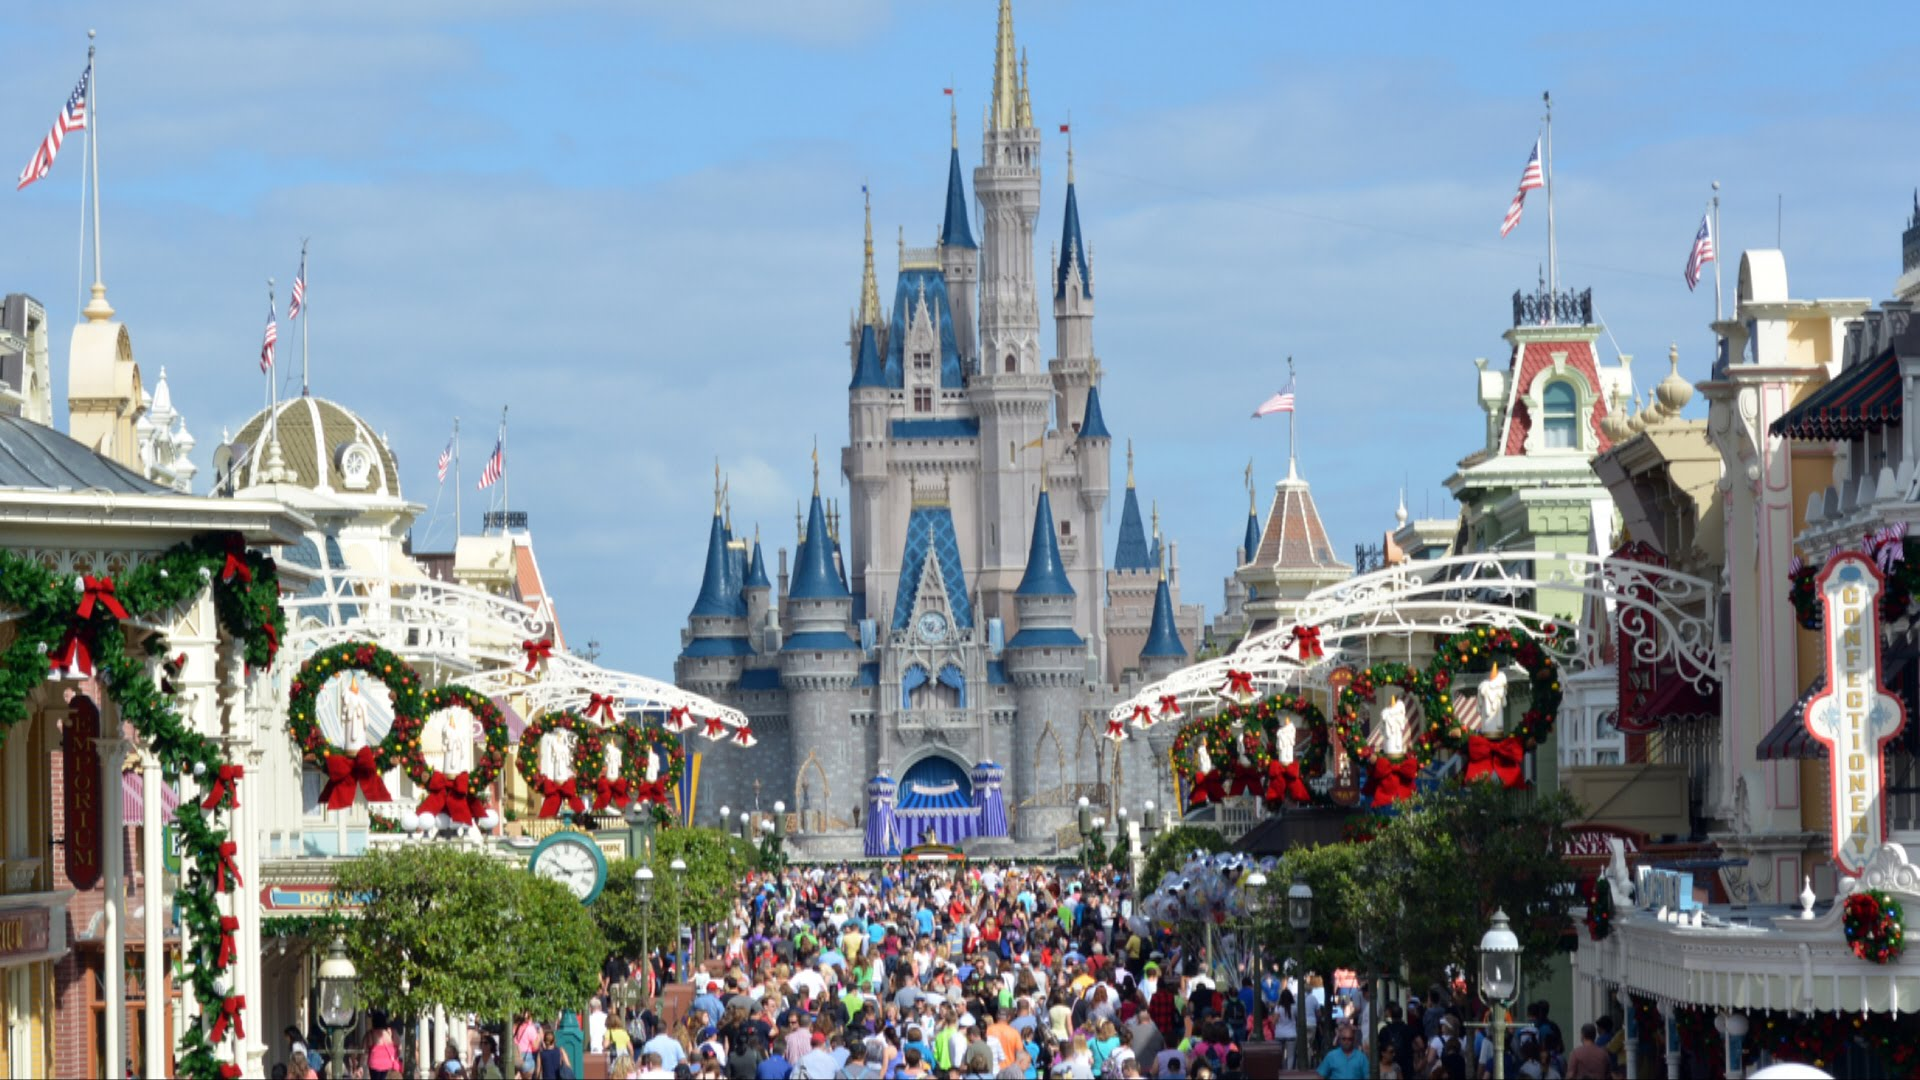 magic kingdom christmas decorations - When Does Disneyworld Decorate For Christmas